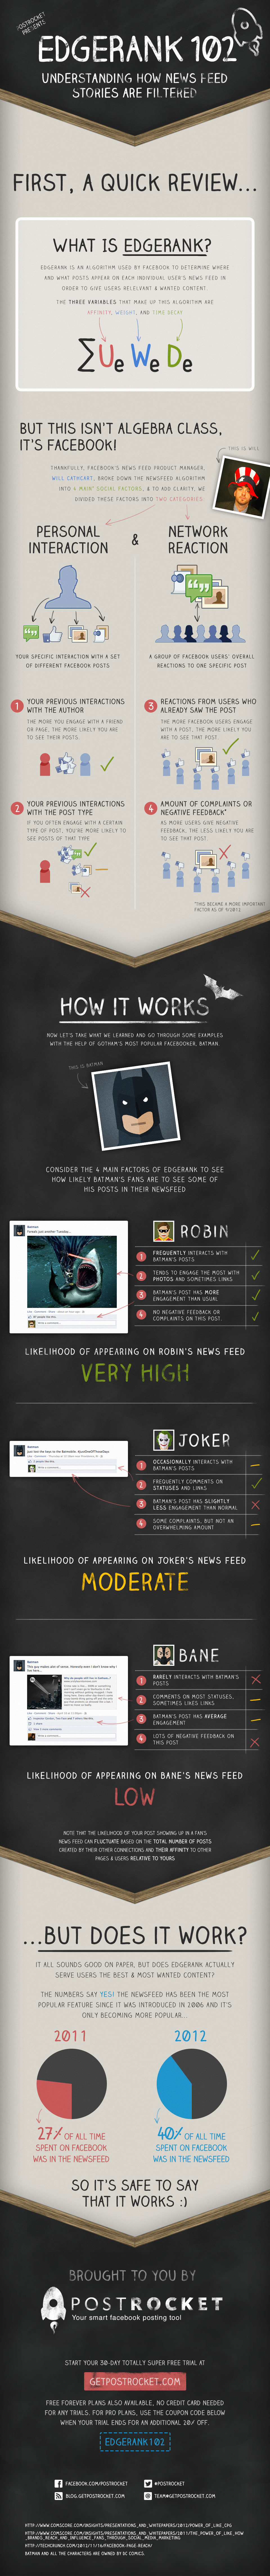 Facebook EdgeRank newsfeed filter